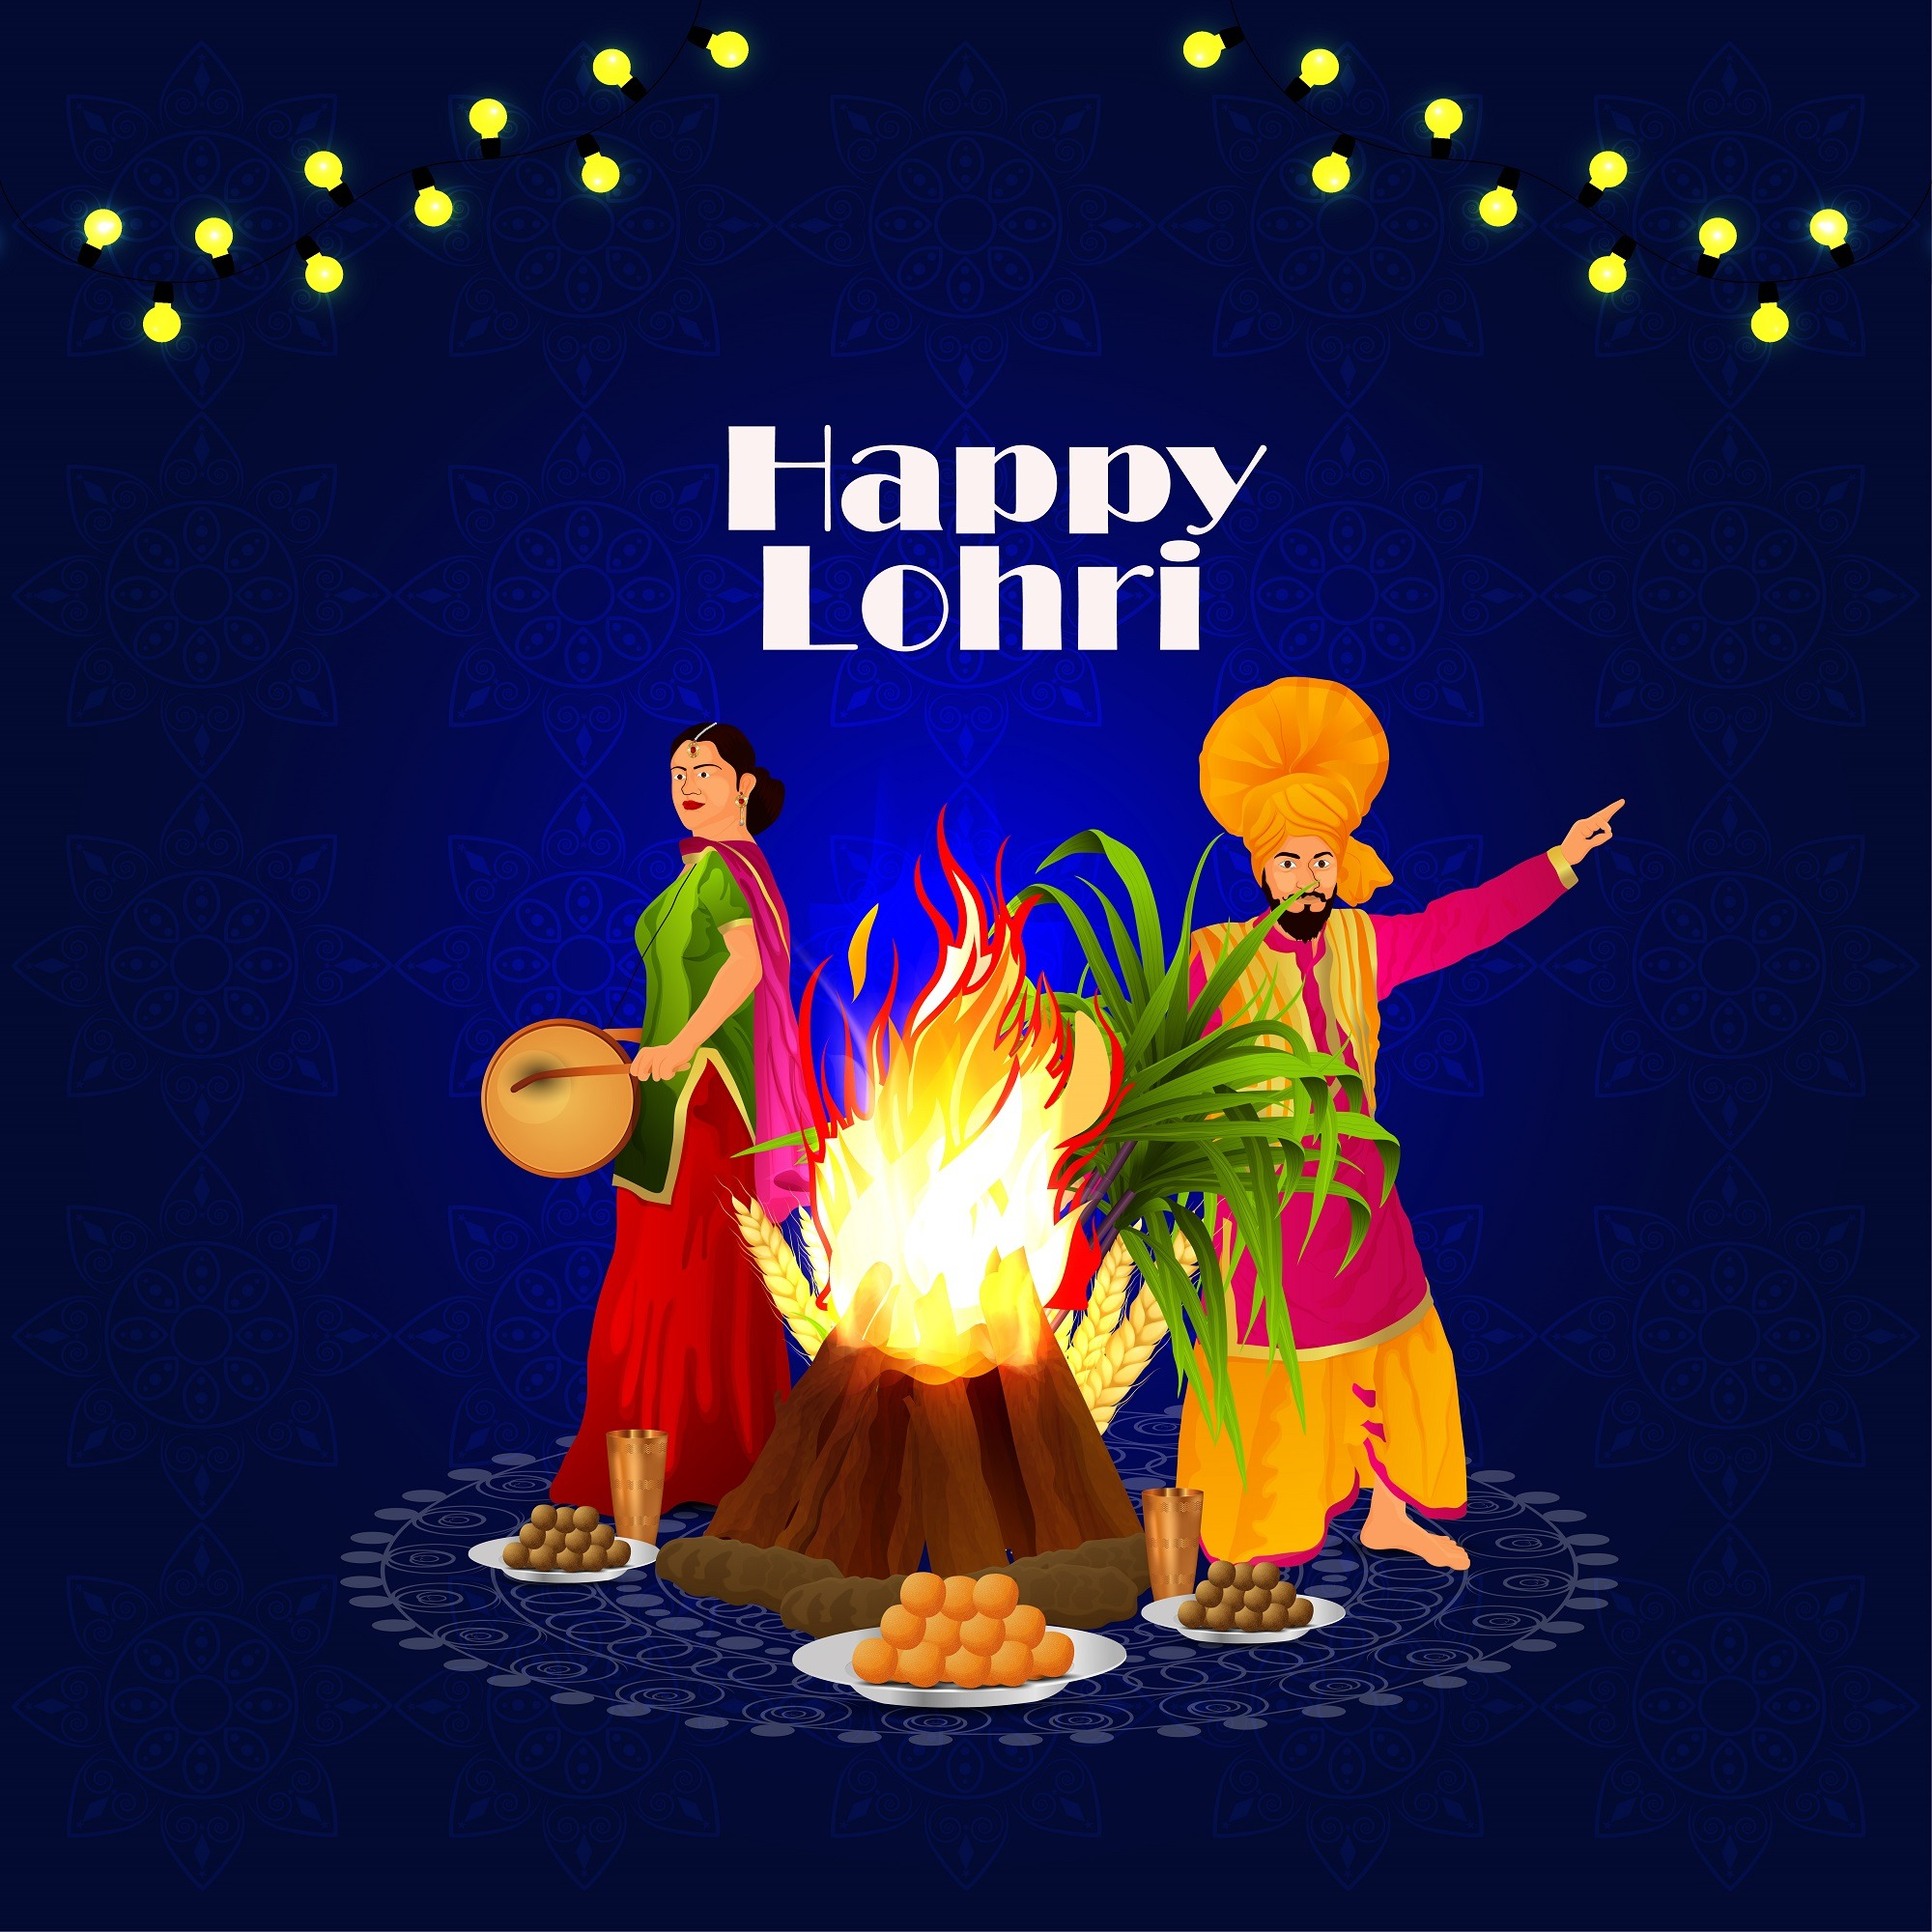 Happy Lohri Celebration Background With Panjabi Dancers women and man